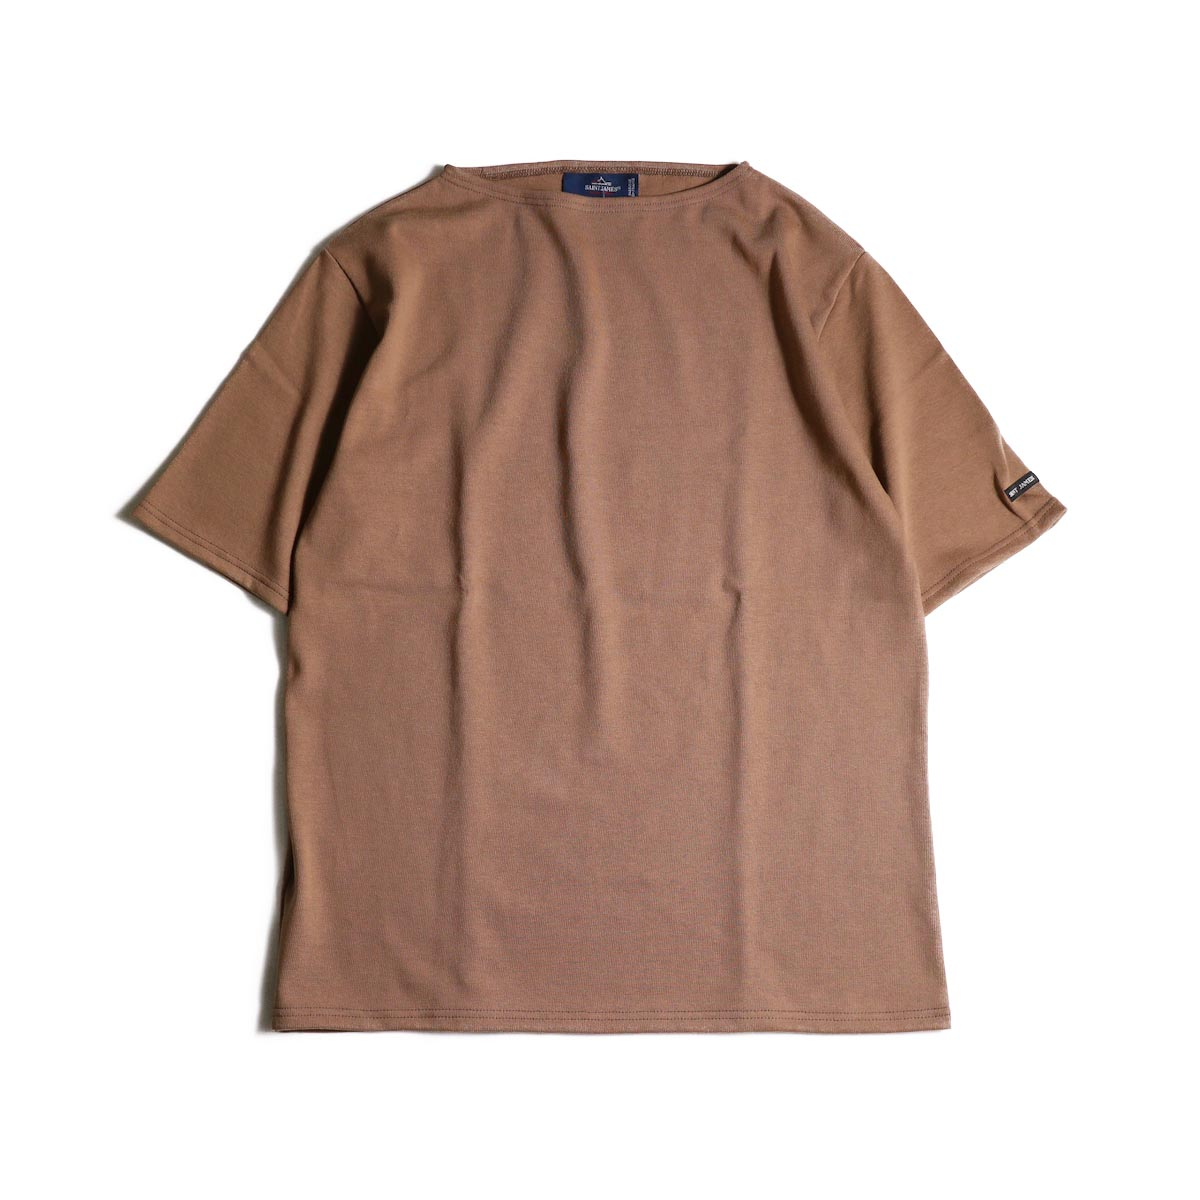 SAINT JAMES / OUESSANT LIGHT SHORT SLEEVE (Noisette)